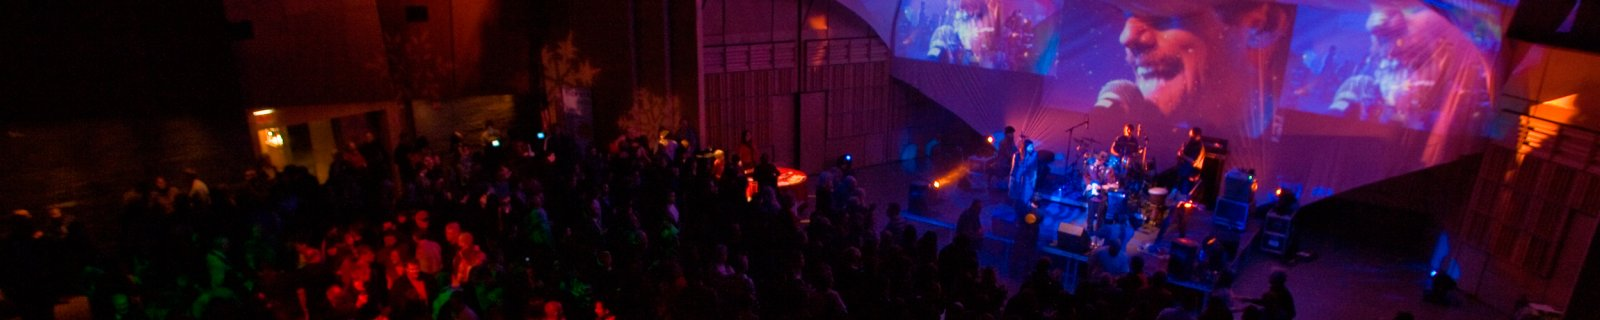 Enjoy an evening of live music and hot glassmaking at 2300° events.